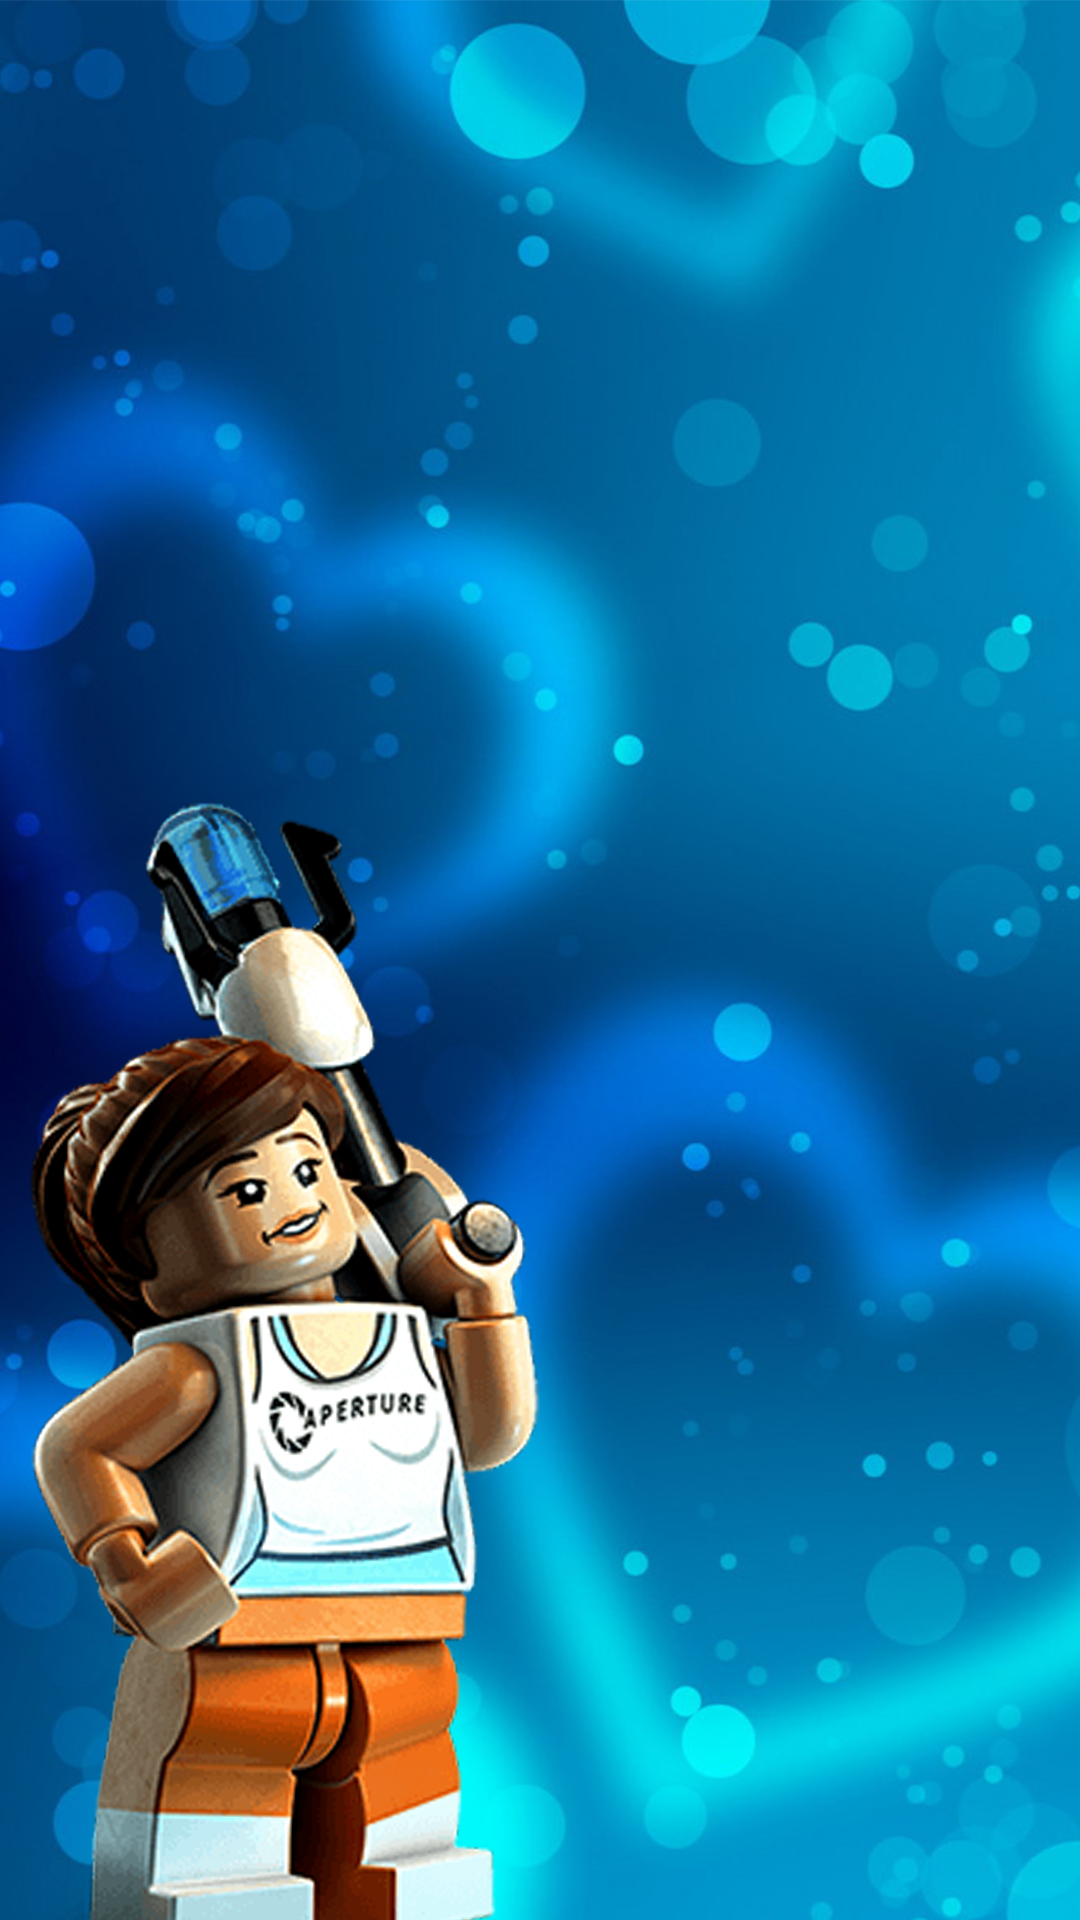 Chell Valentine Wallpaper Lego Dimensions PIC MCH052028